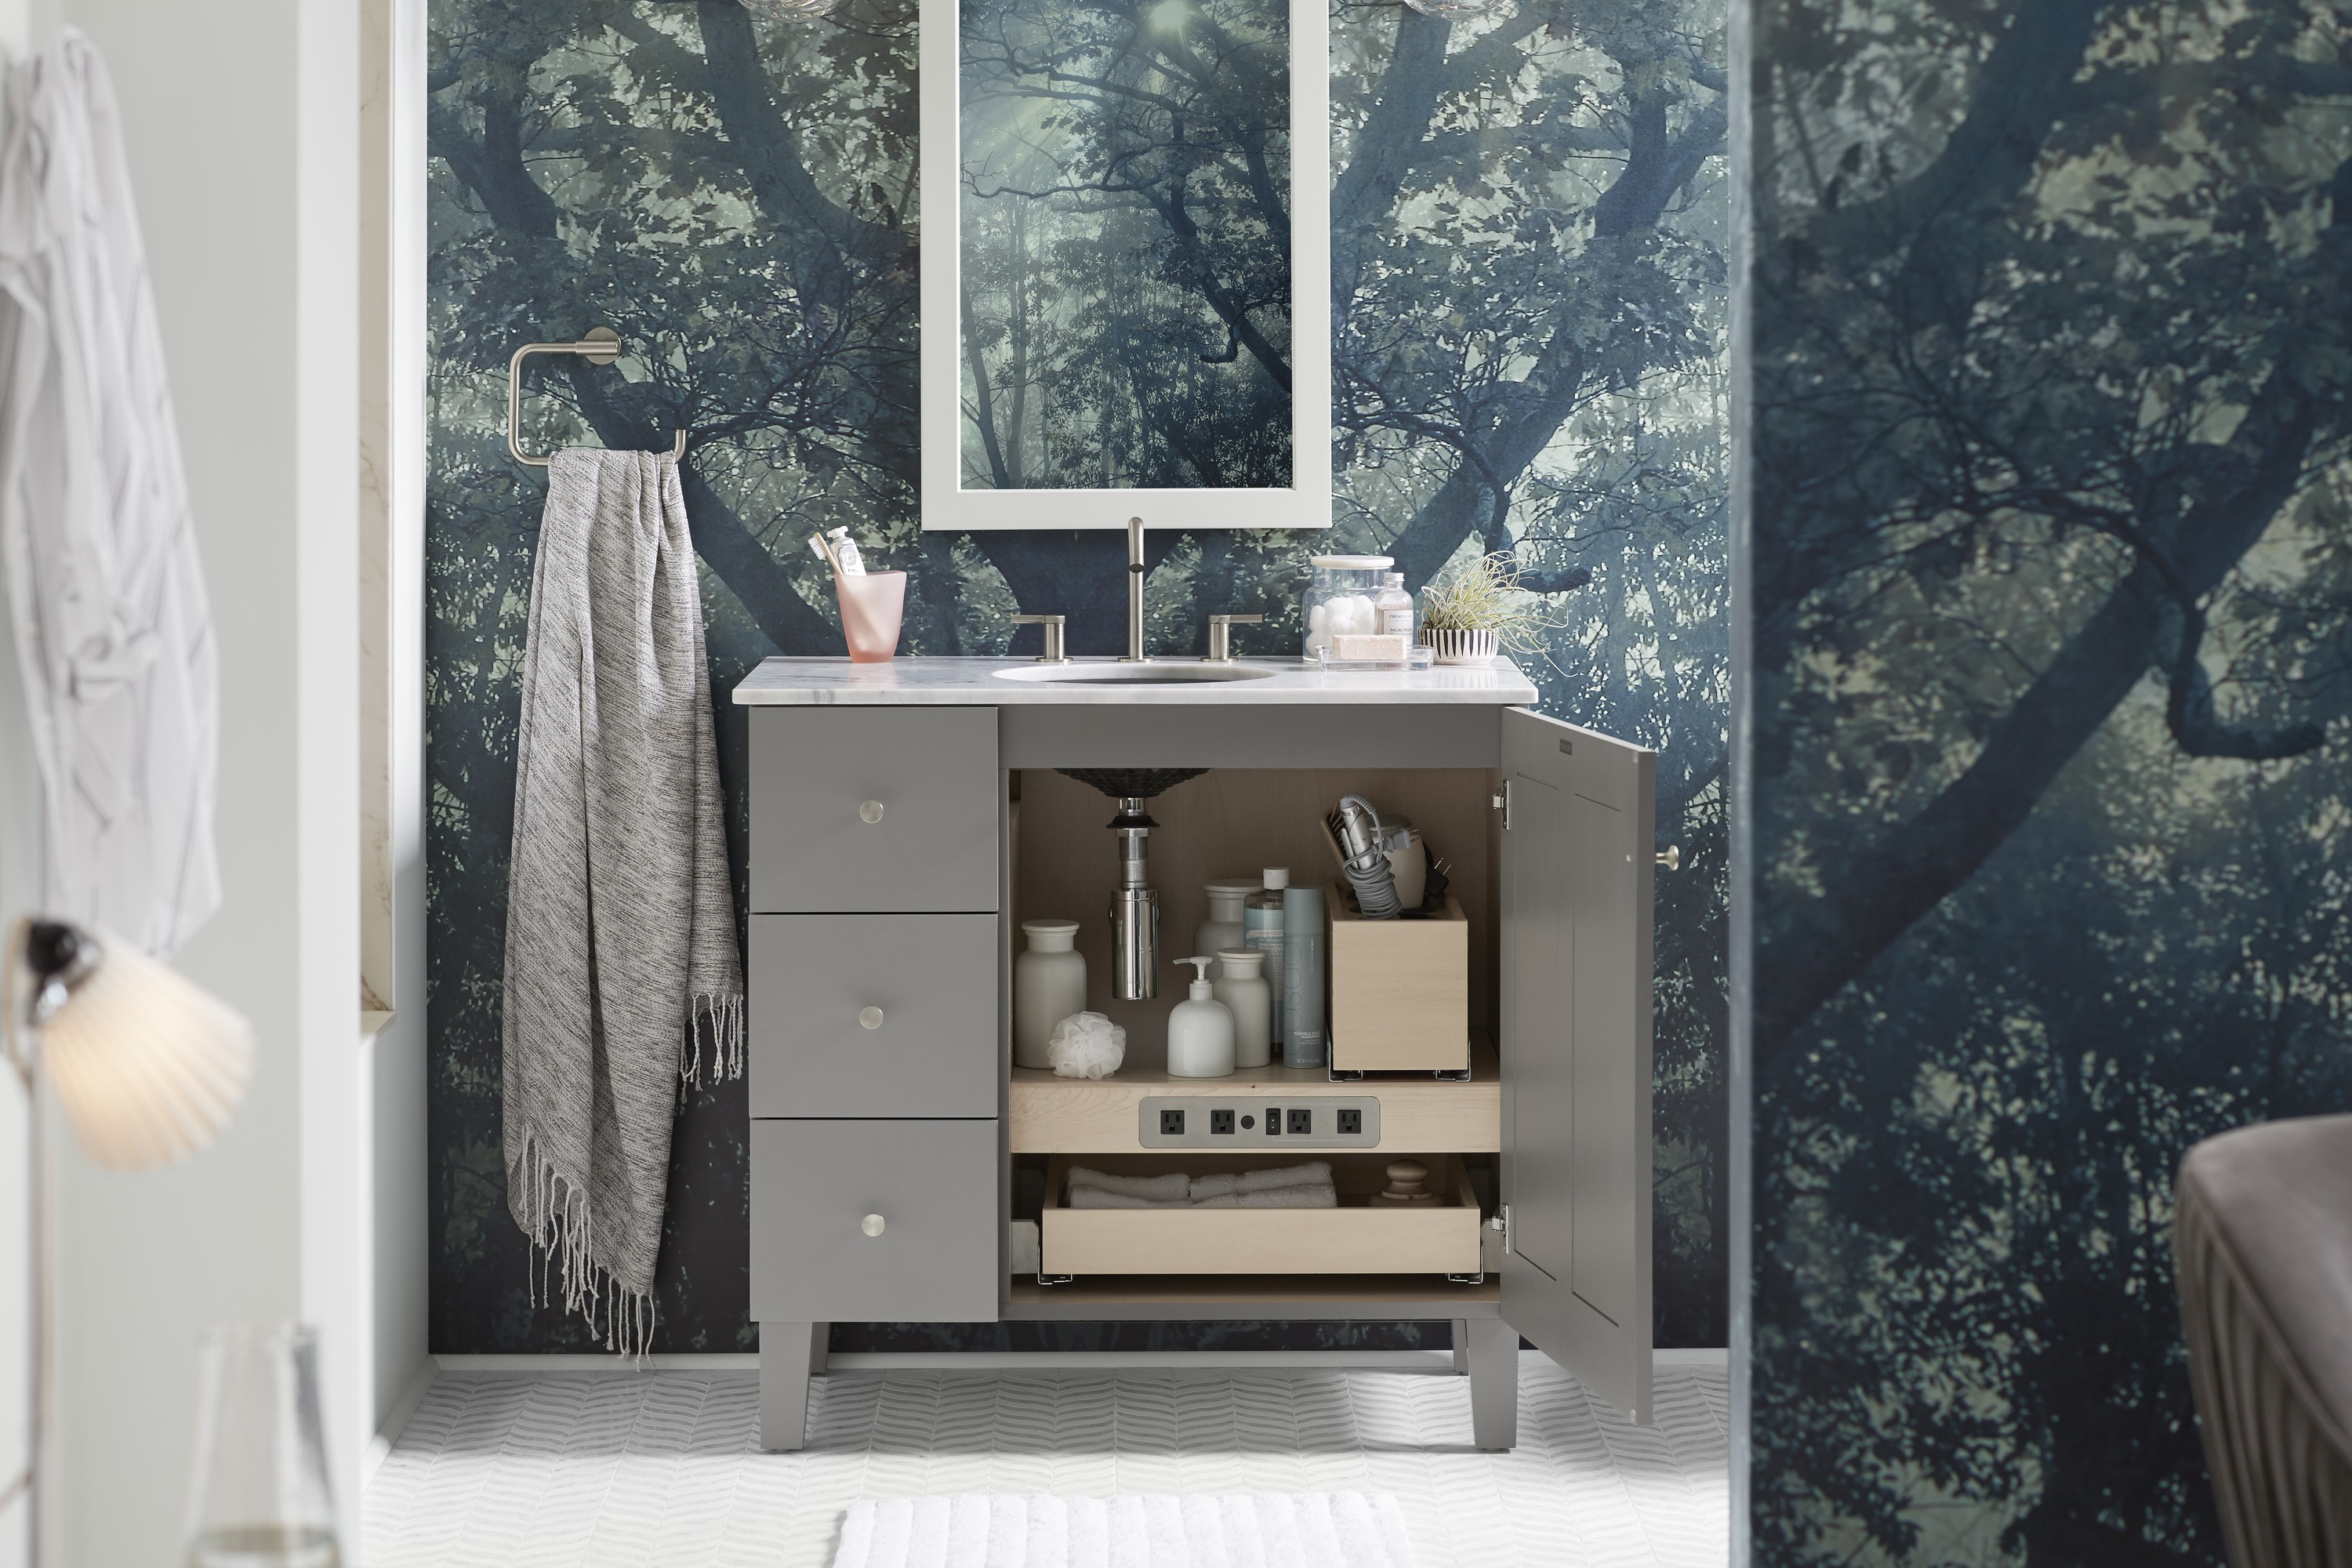 Poplin® vanity     Adjustable shelf with electrical outlets     Rollout tray     Purist® cabinet knob     The rollout tray and built-in electrical outlets turn the room's single vanity into a storage powerhouse.